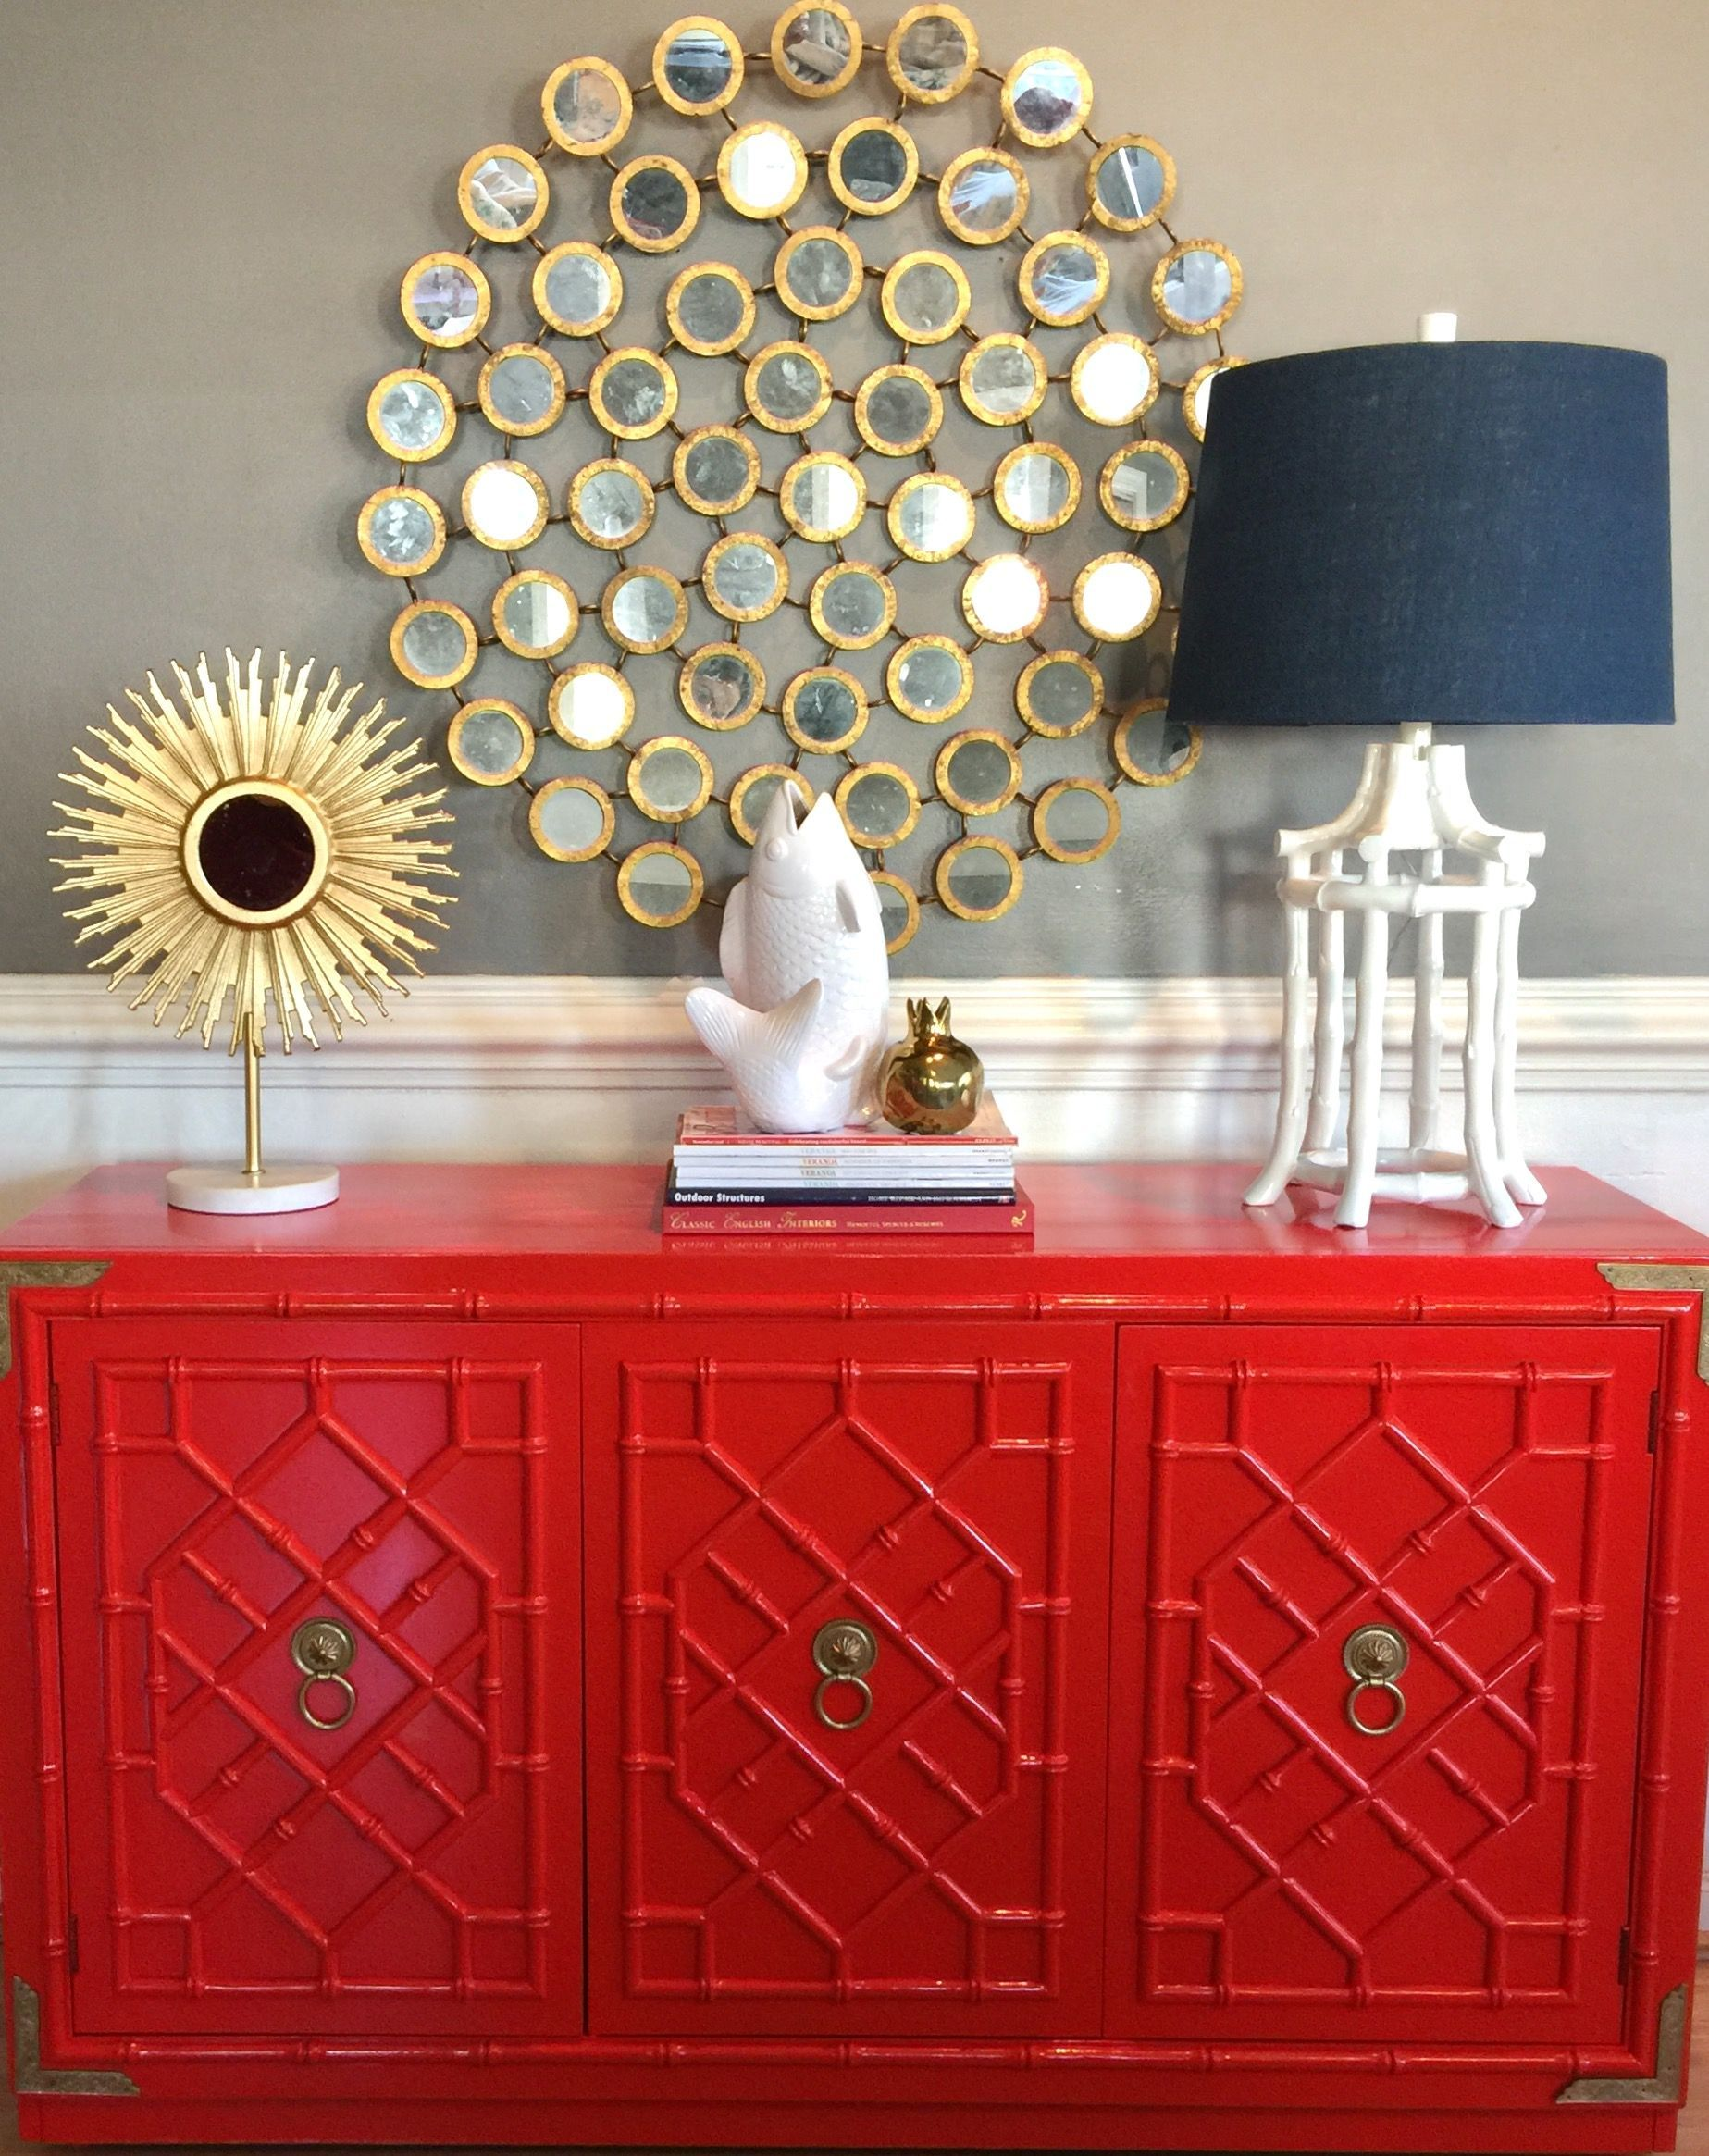 Thomasville Huntley Allegro Faux Bamboo Fretwork Buffet Server Redone In Lacquered Chinoiserie High Gloss Red V Redo Furniture Colorful Furniture Faux Bamboo